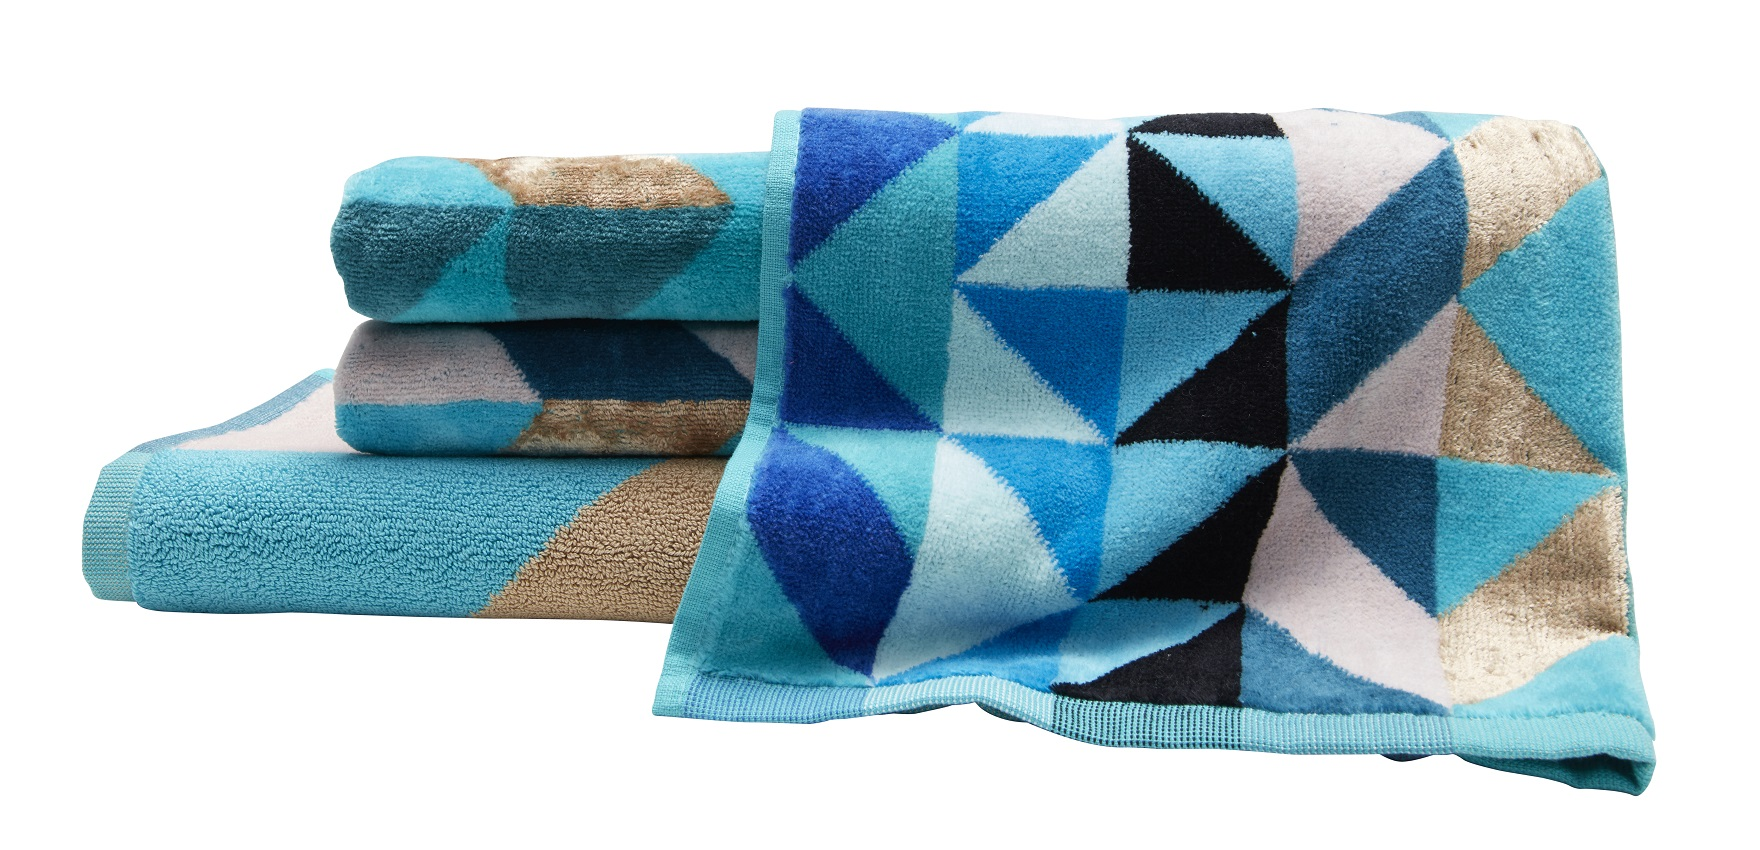 Ninnho Peacock Bath Towel Set Designs To Inspire